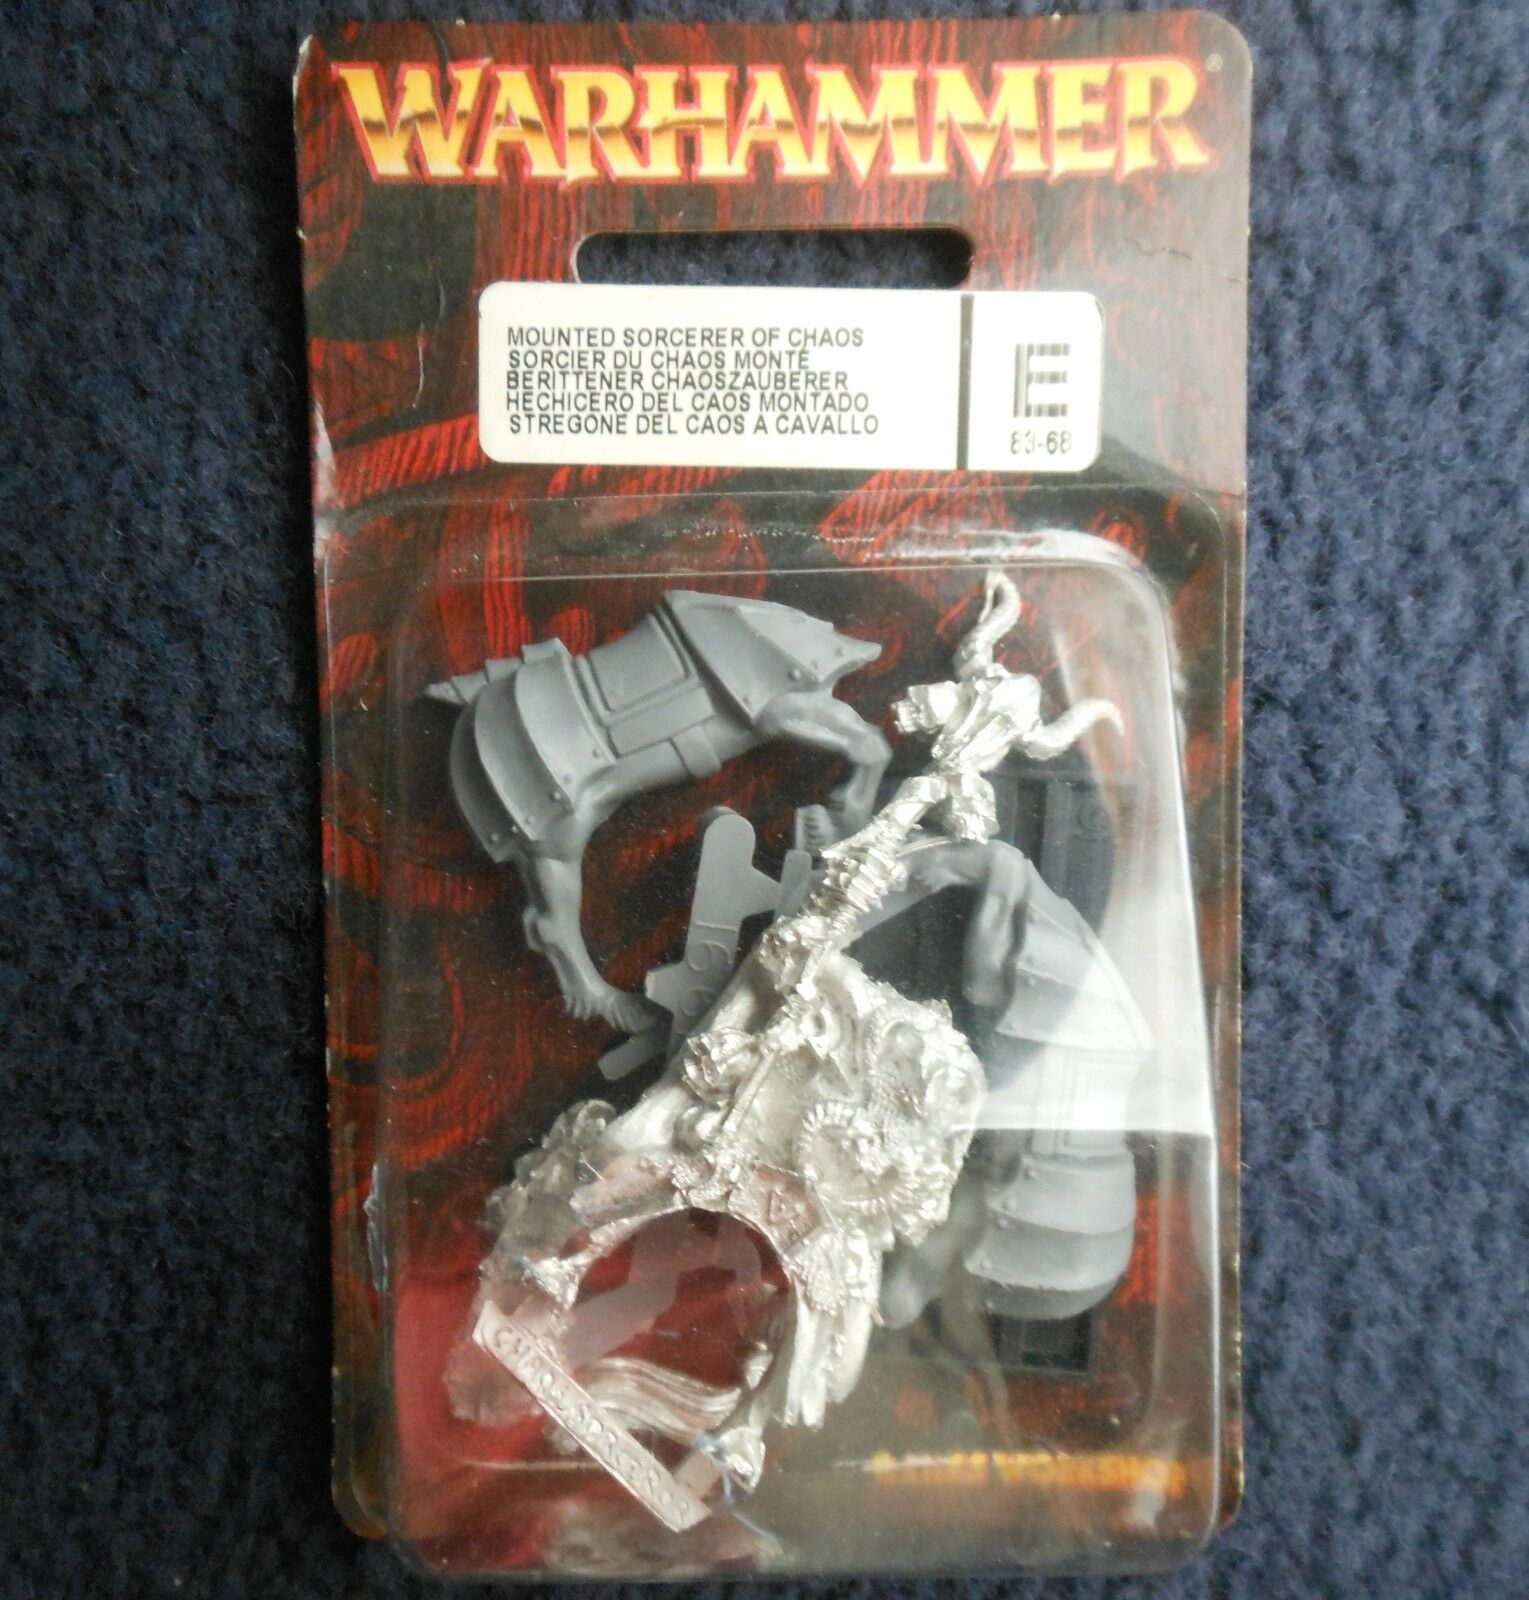 2002 Chaos Sorcerer Mounted Citadel Warhammer Army Evil Mage Magus Wizard MIB GW